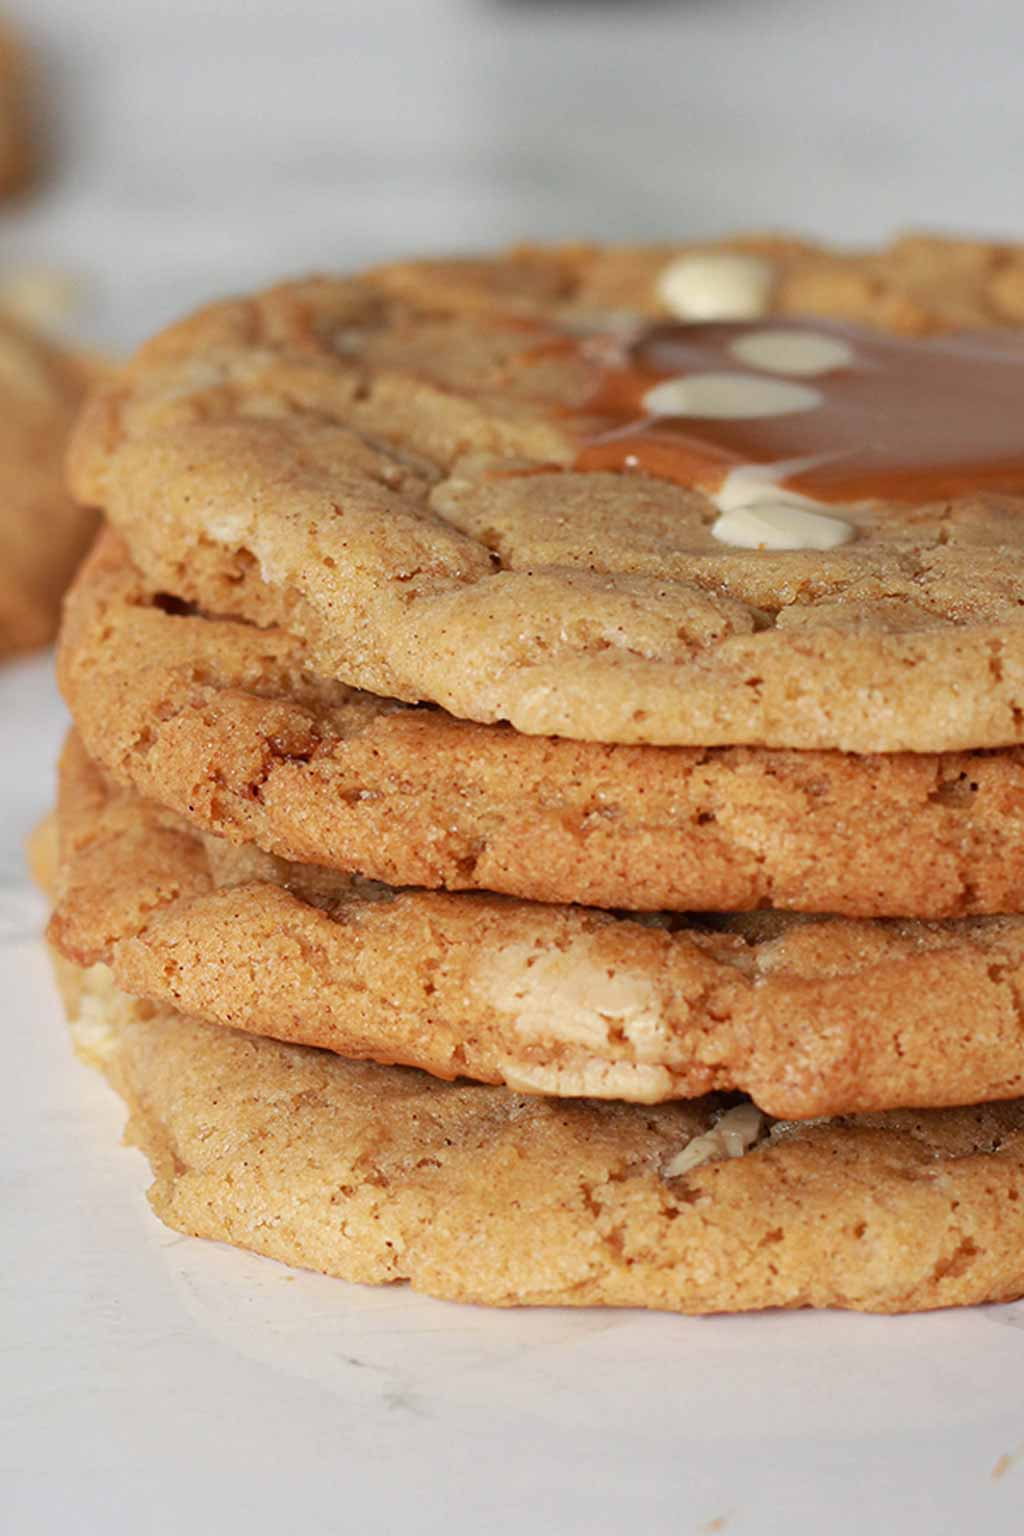 stack of 4 cookies